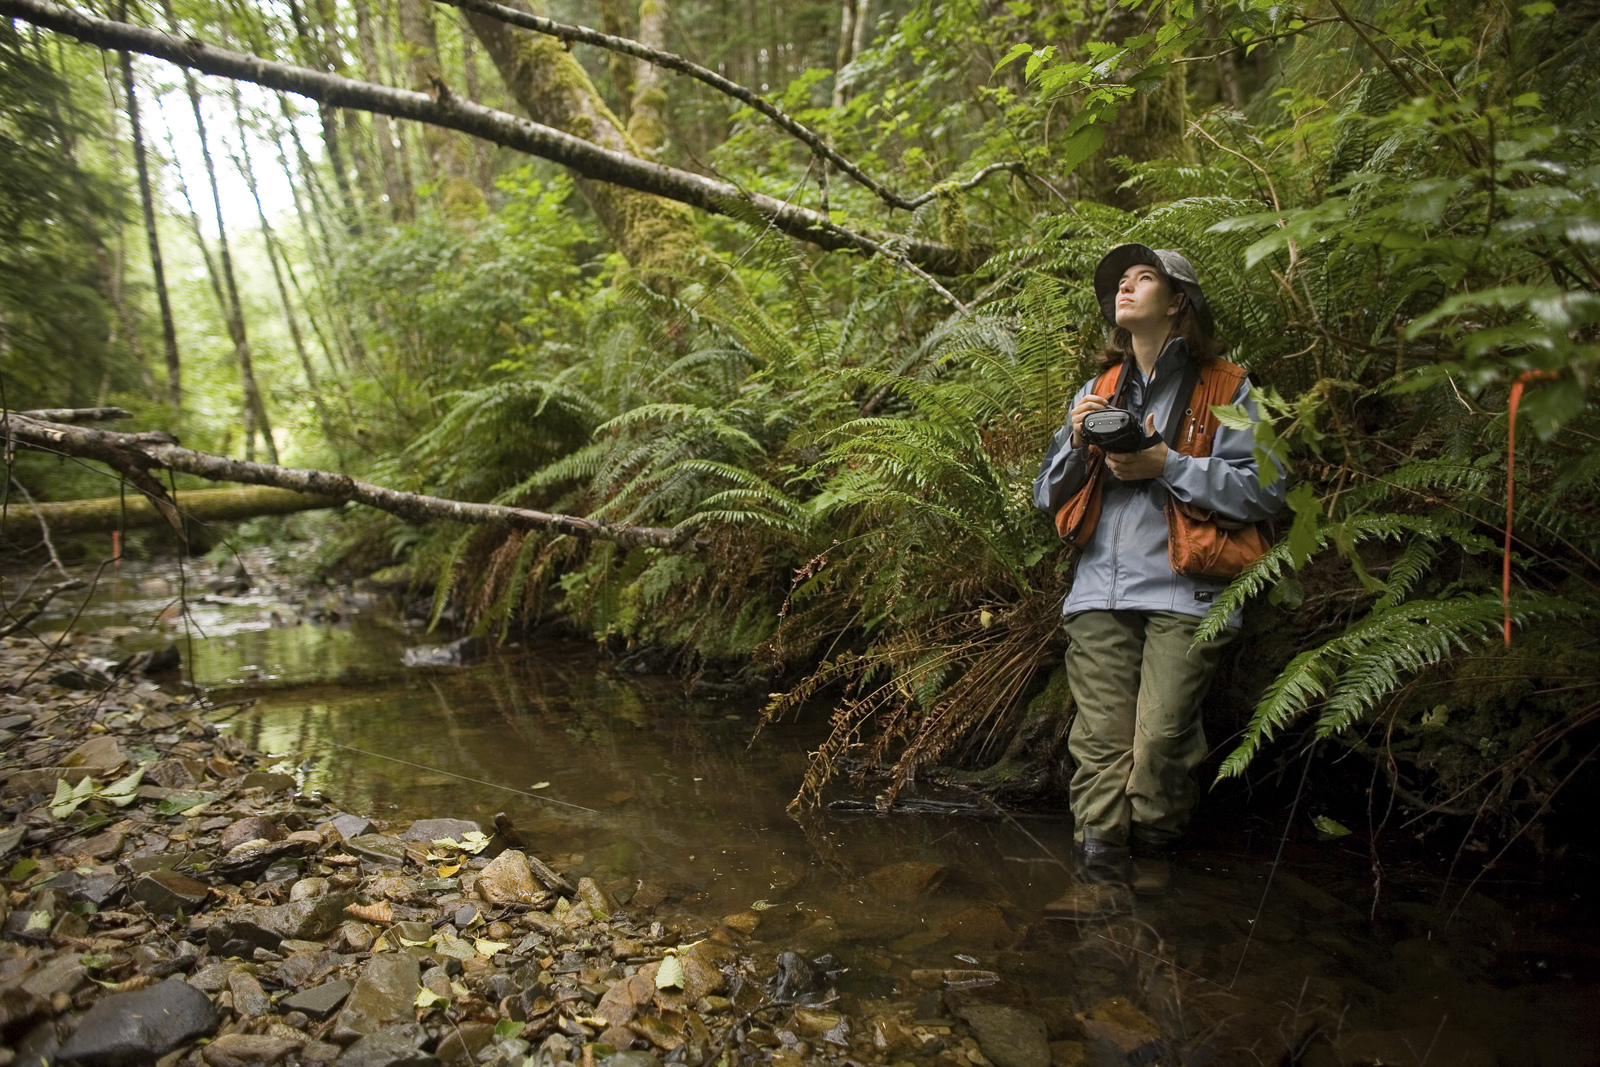 Liane Davis enters observations into an electronic data recorder while measuring the width and depth of a stream that feeds into Ellsworth Creek near Willapa Bay.Photo by Harley Soltes.